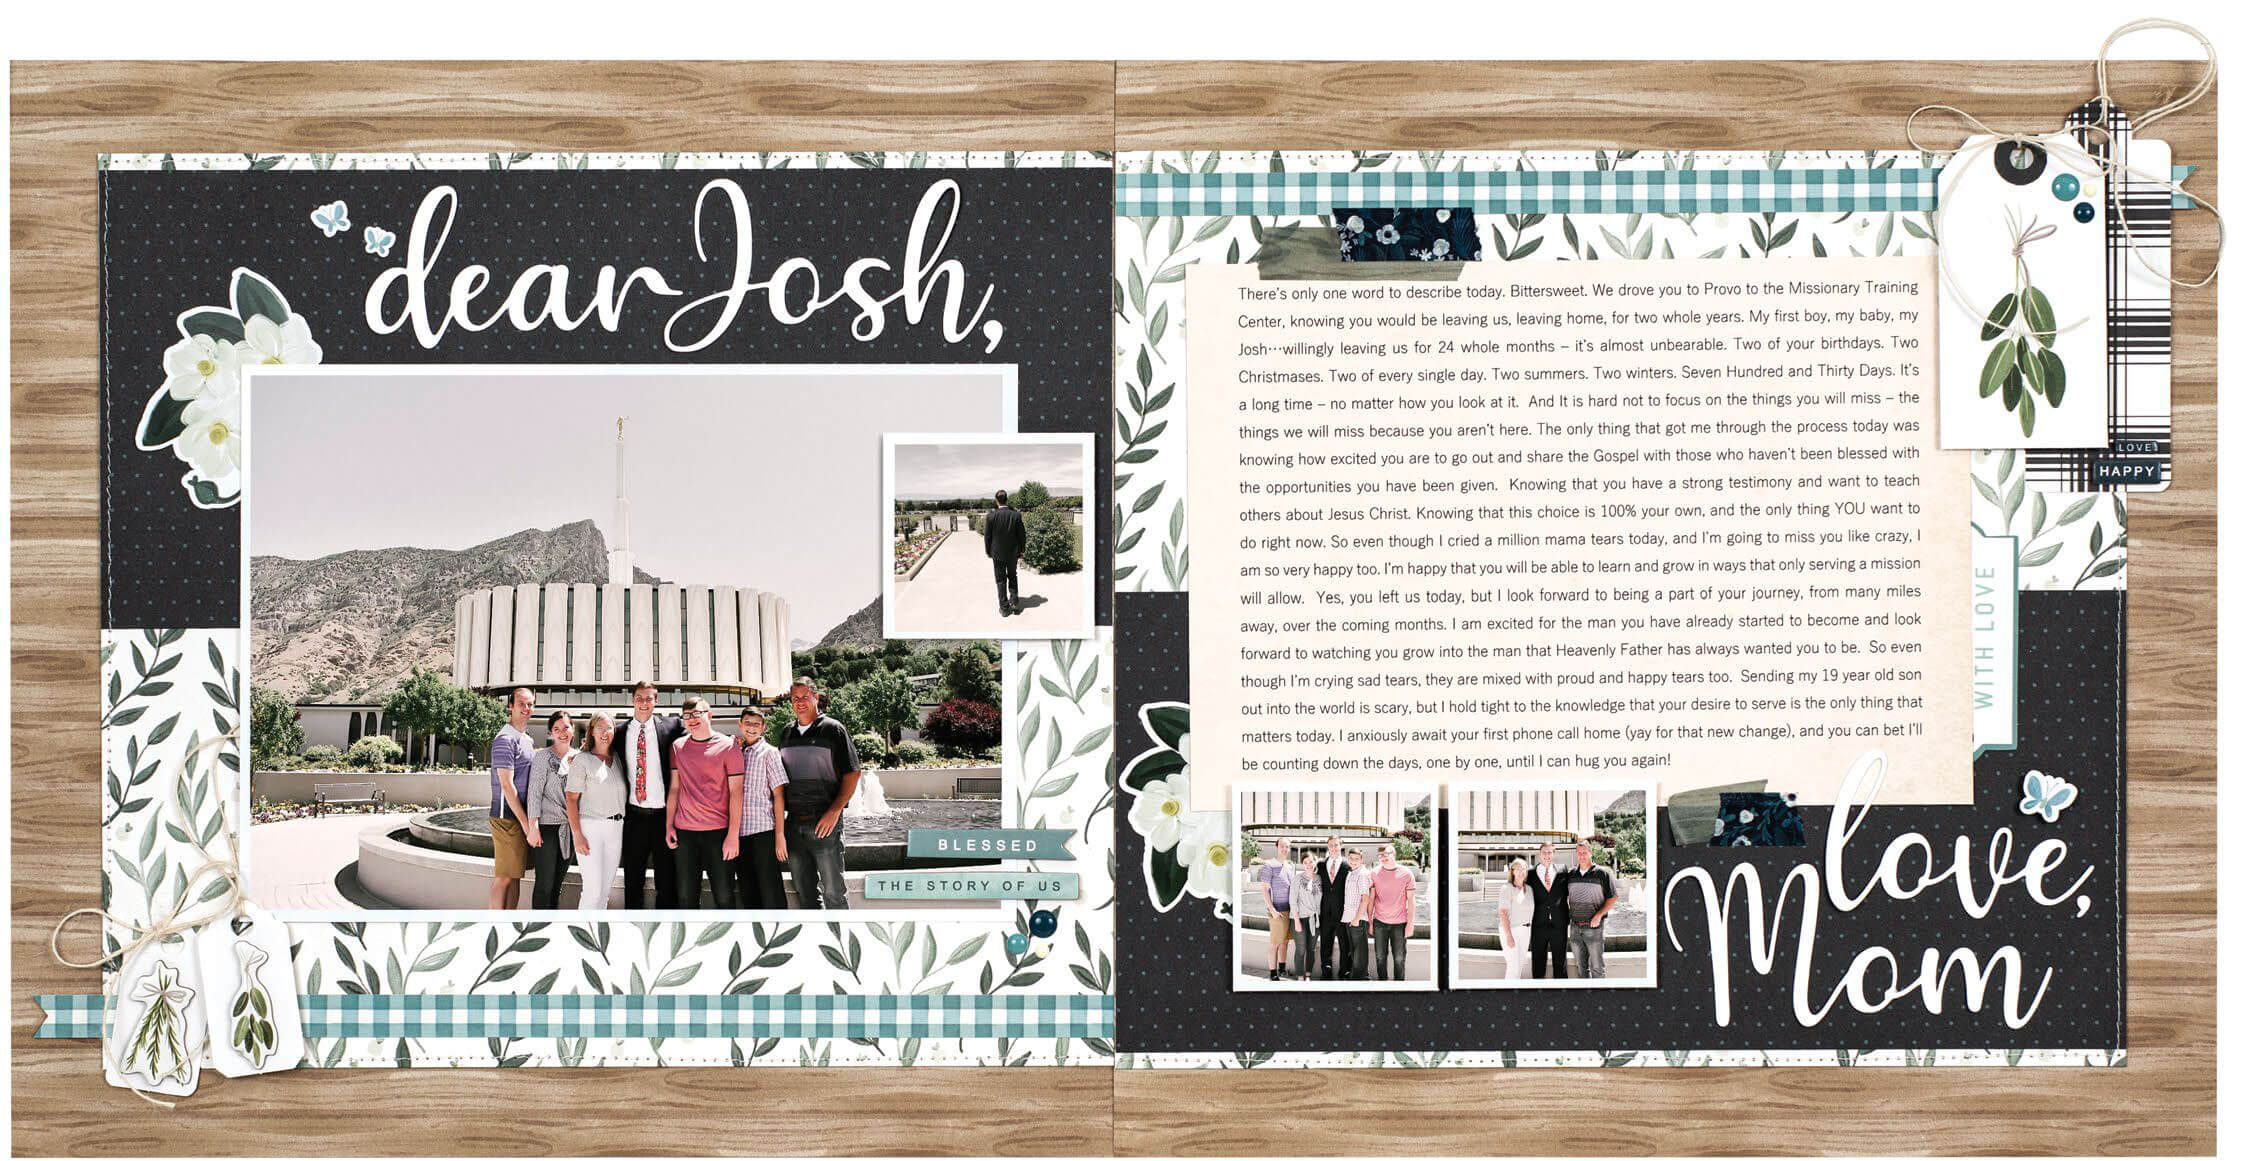 Scrapbook & Cards Today - Spring 2020 - Dear Josh layout by Wendy Sue Anderson